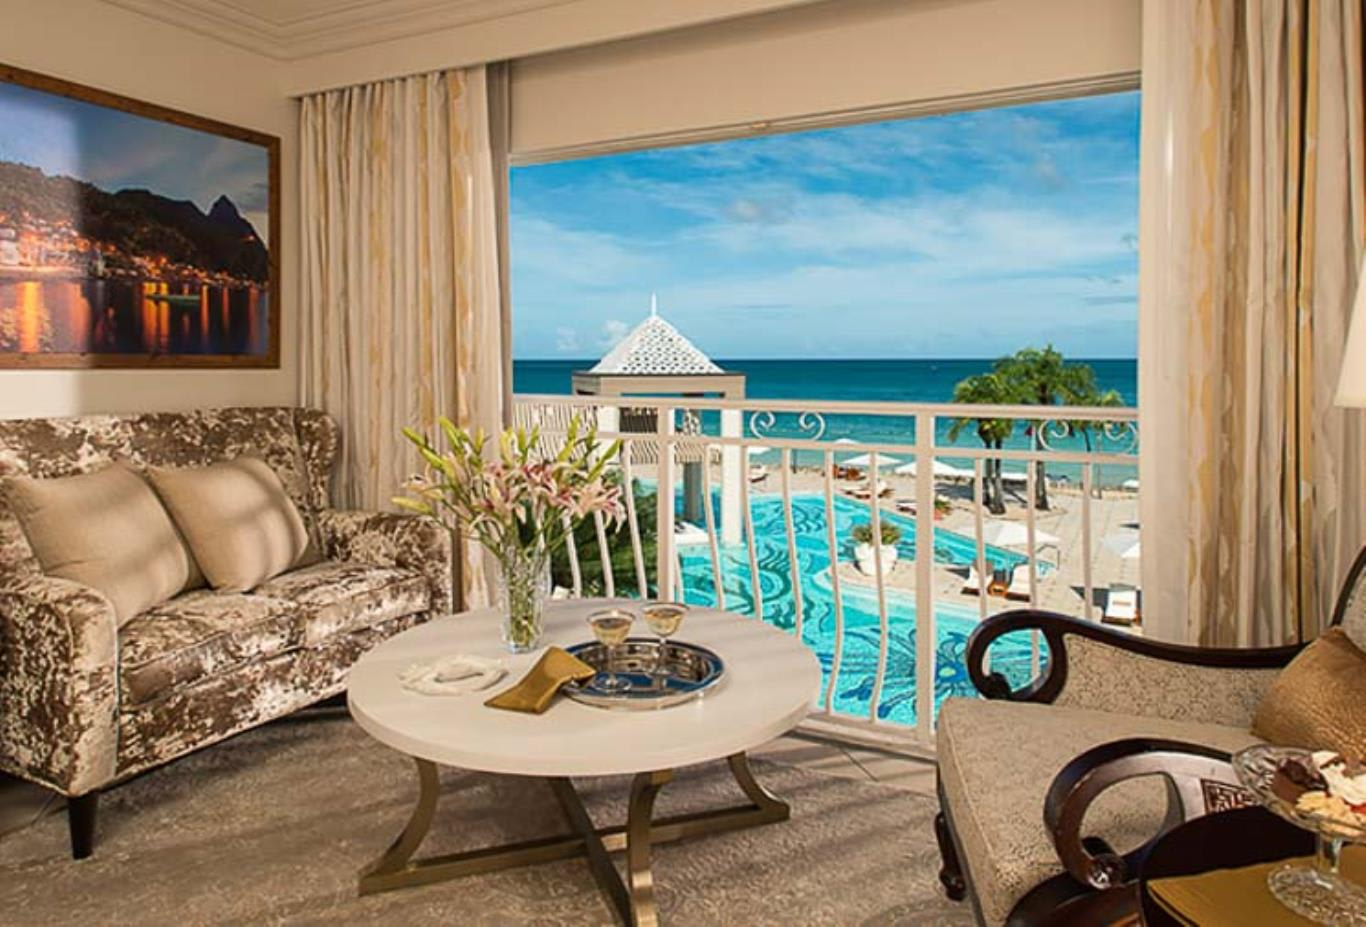 LO - Honeymoon Luxury Oceanview Room